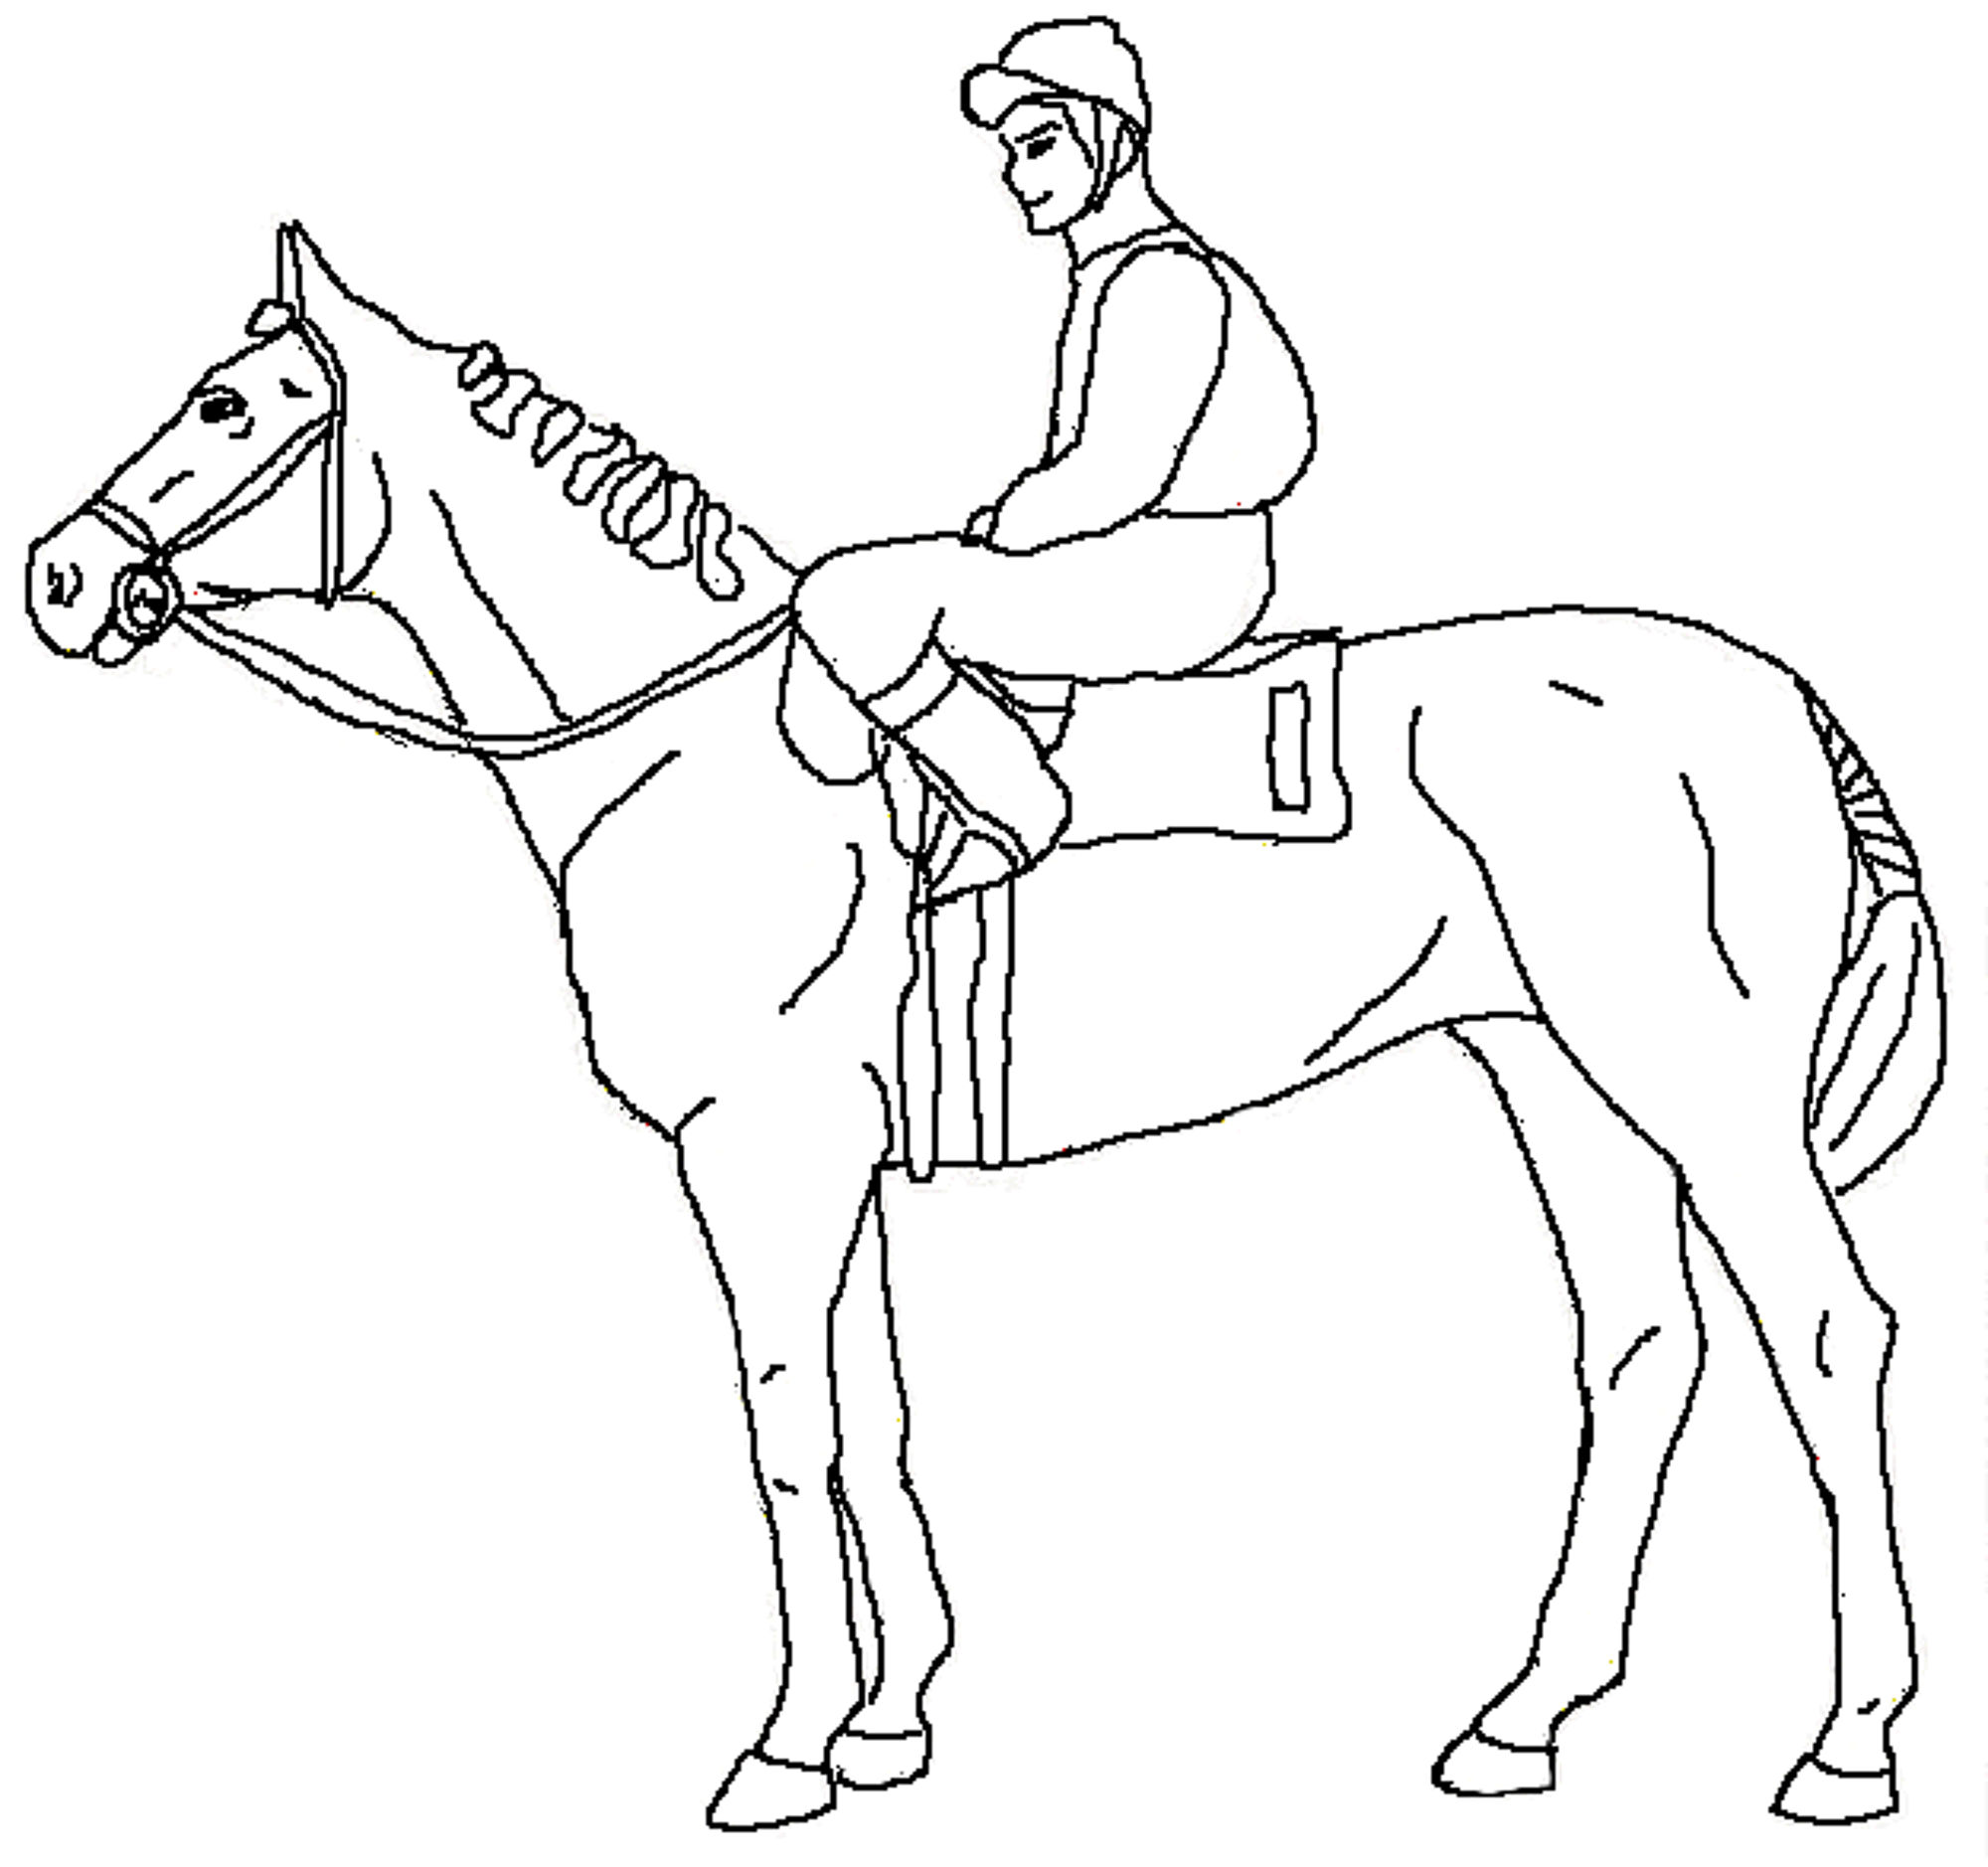 horse coloring fun horse coloring pages for your kids printable horse coloring 1 2